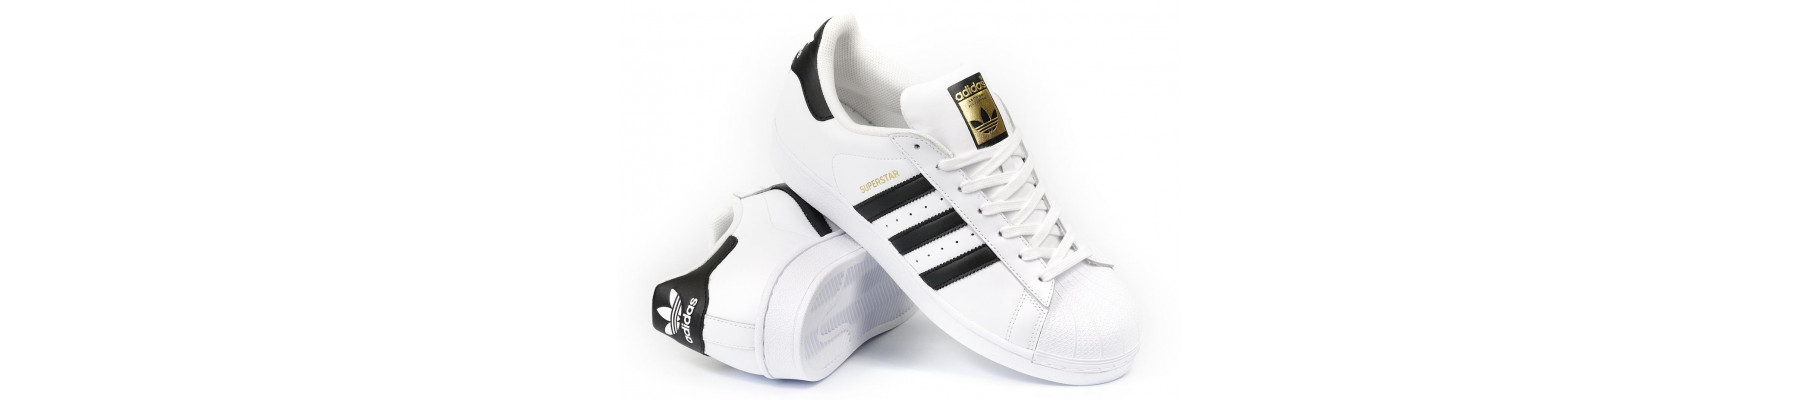 Adidas Superstar WhiteBlack